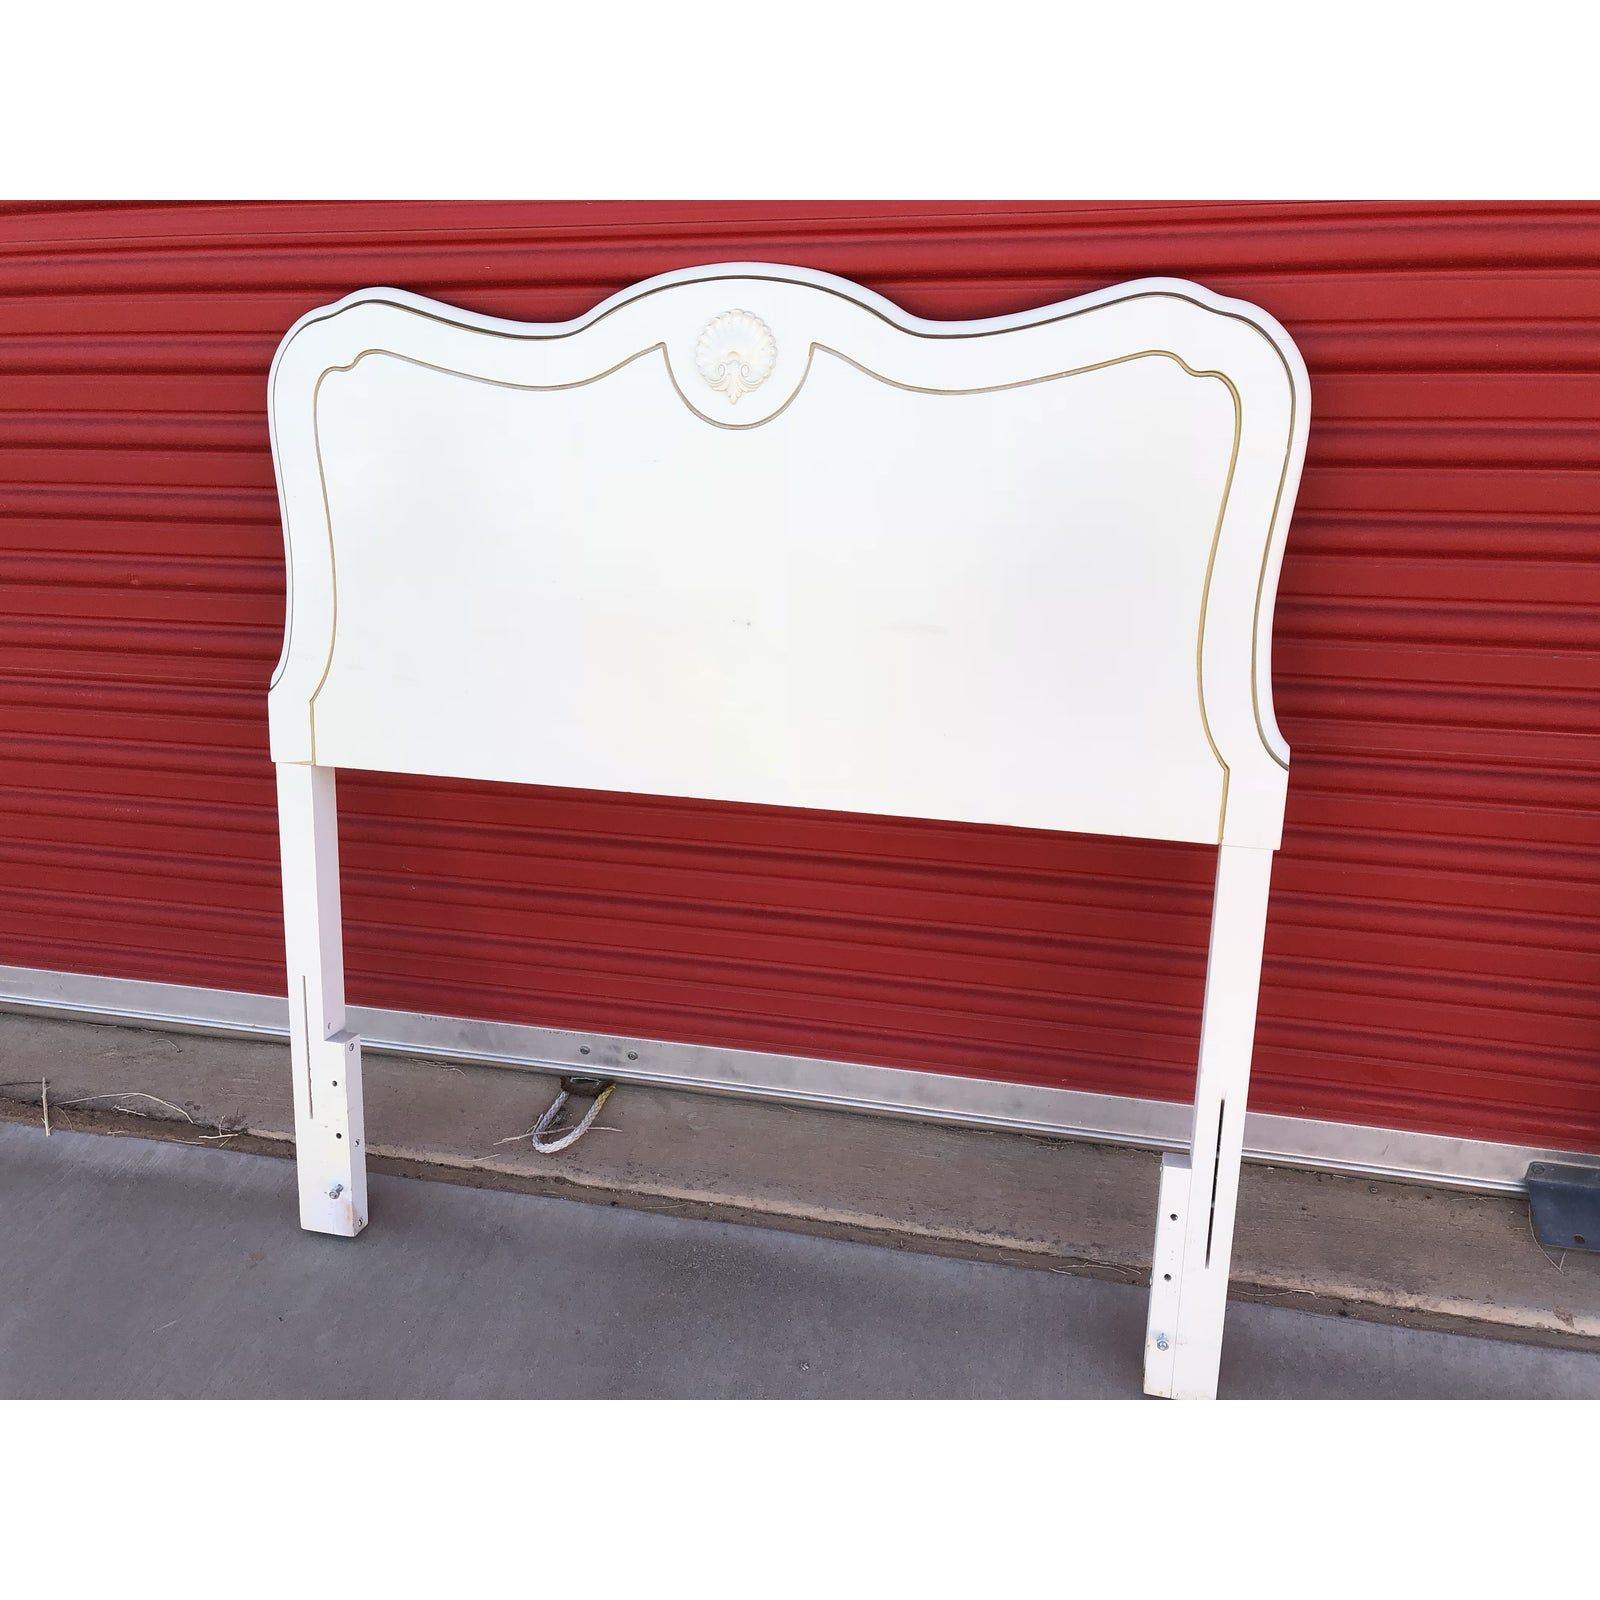 1950s Vintage Bassett Furniture White Twin Headboard